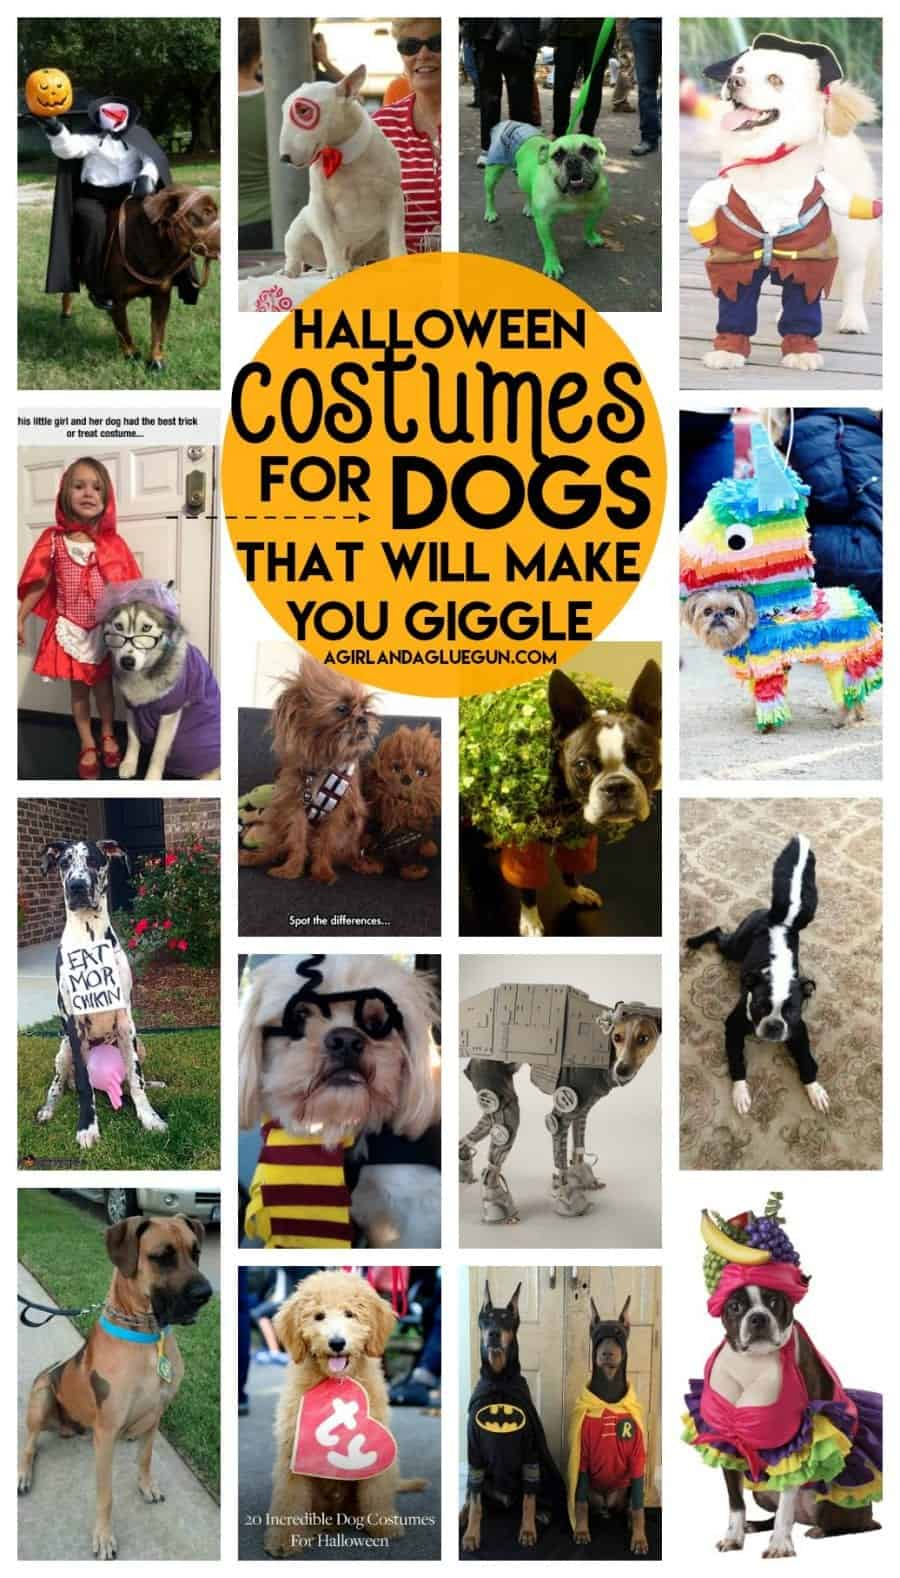 The best halloween costumes for dogs a girl and a glue gun and after you see these hilarious costumes you will want to grab your dogor go buy a dogjust to dress them up check them out for yourself solutioingenieria Choice Image